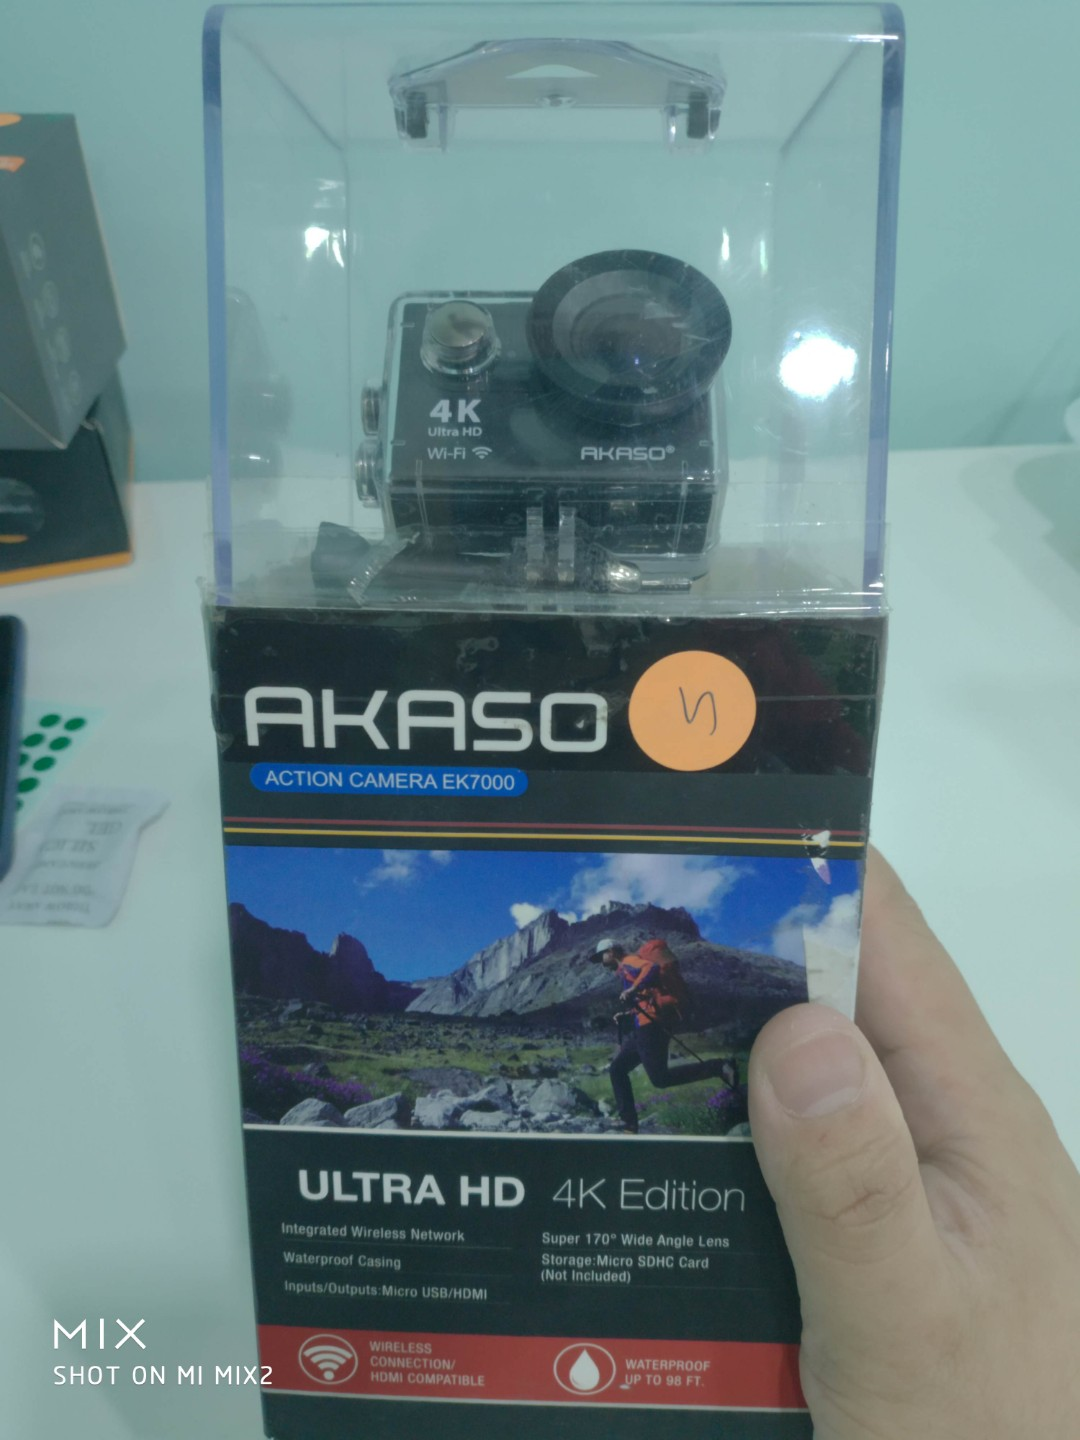 Akaso action camera Ek7000 (some scratches on screen)